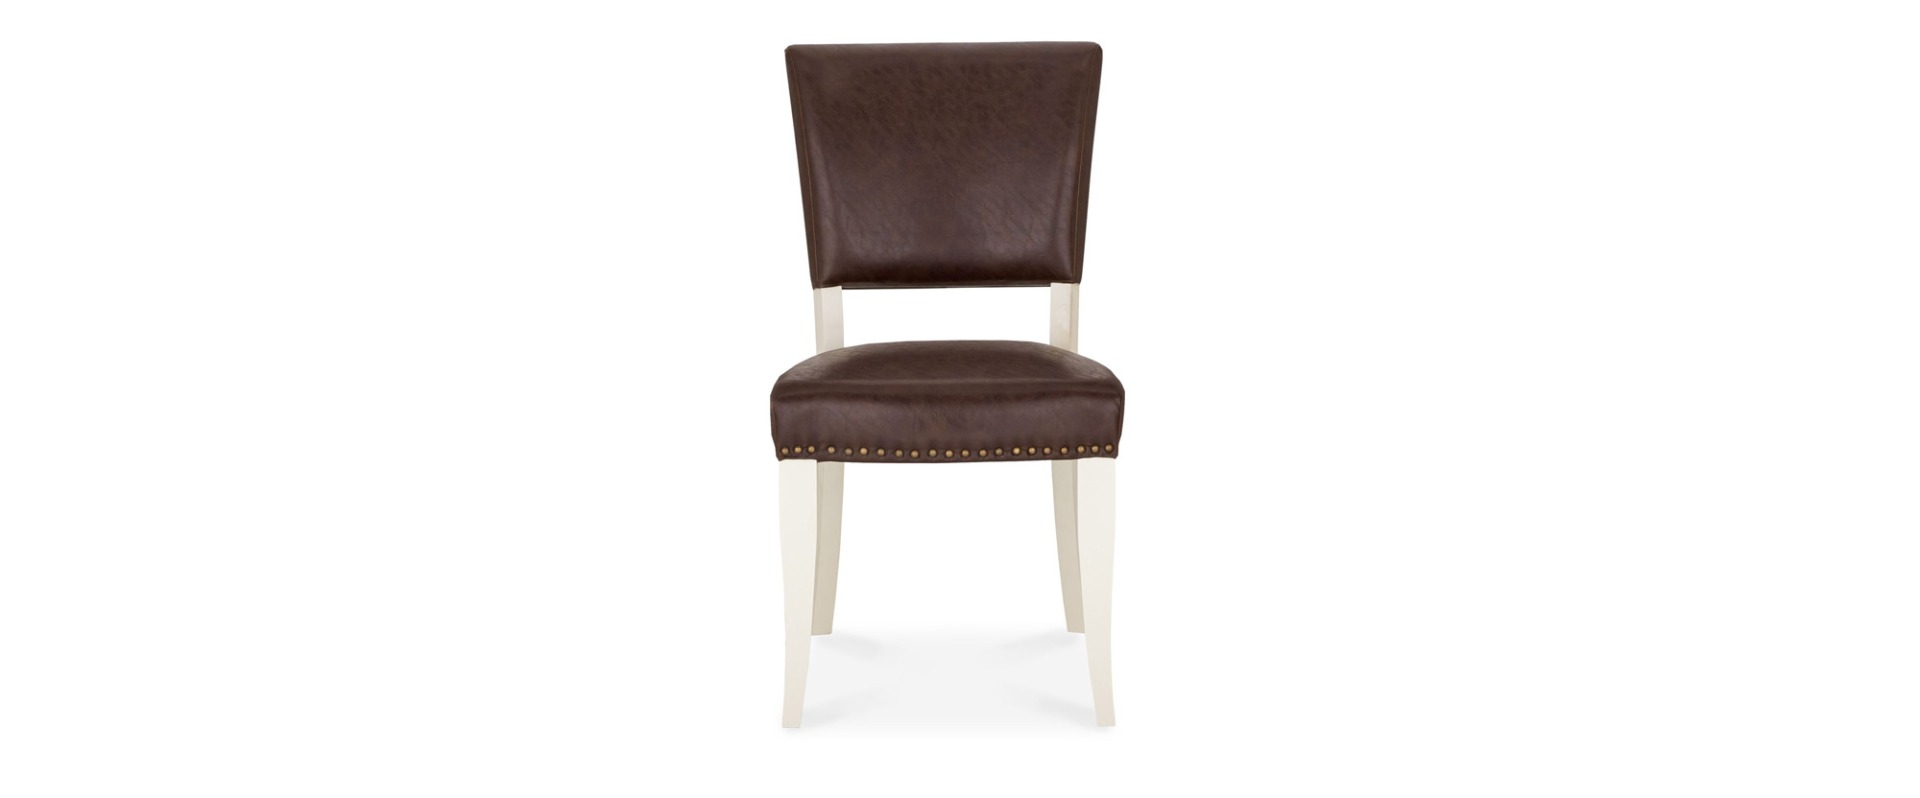 Belgrave Ivory & Rustic Tan Dining Chair